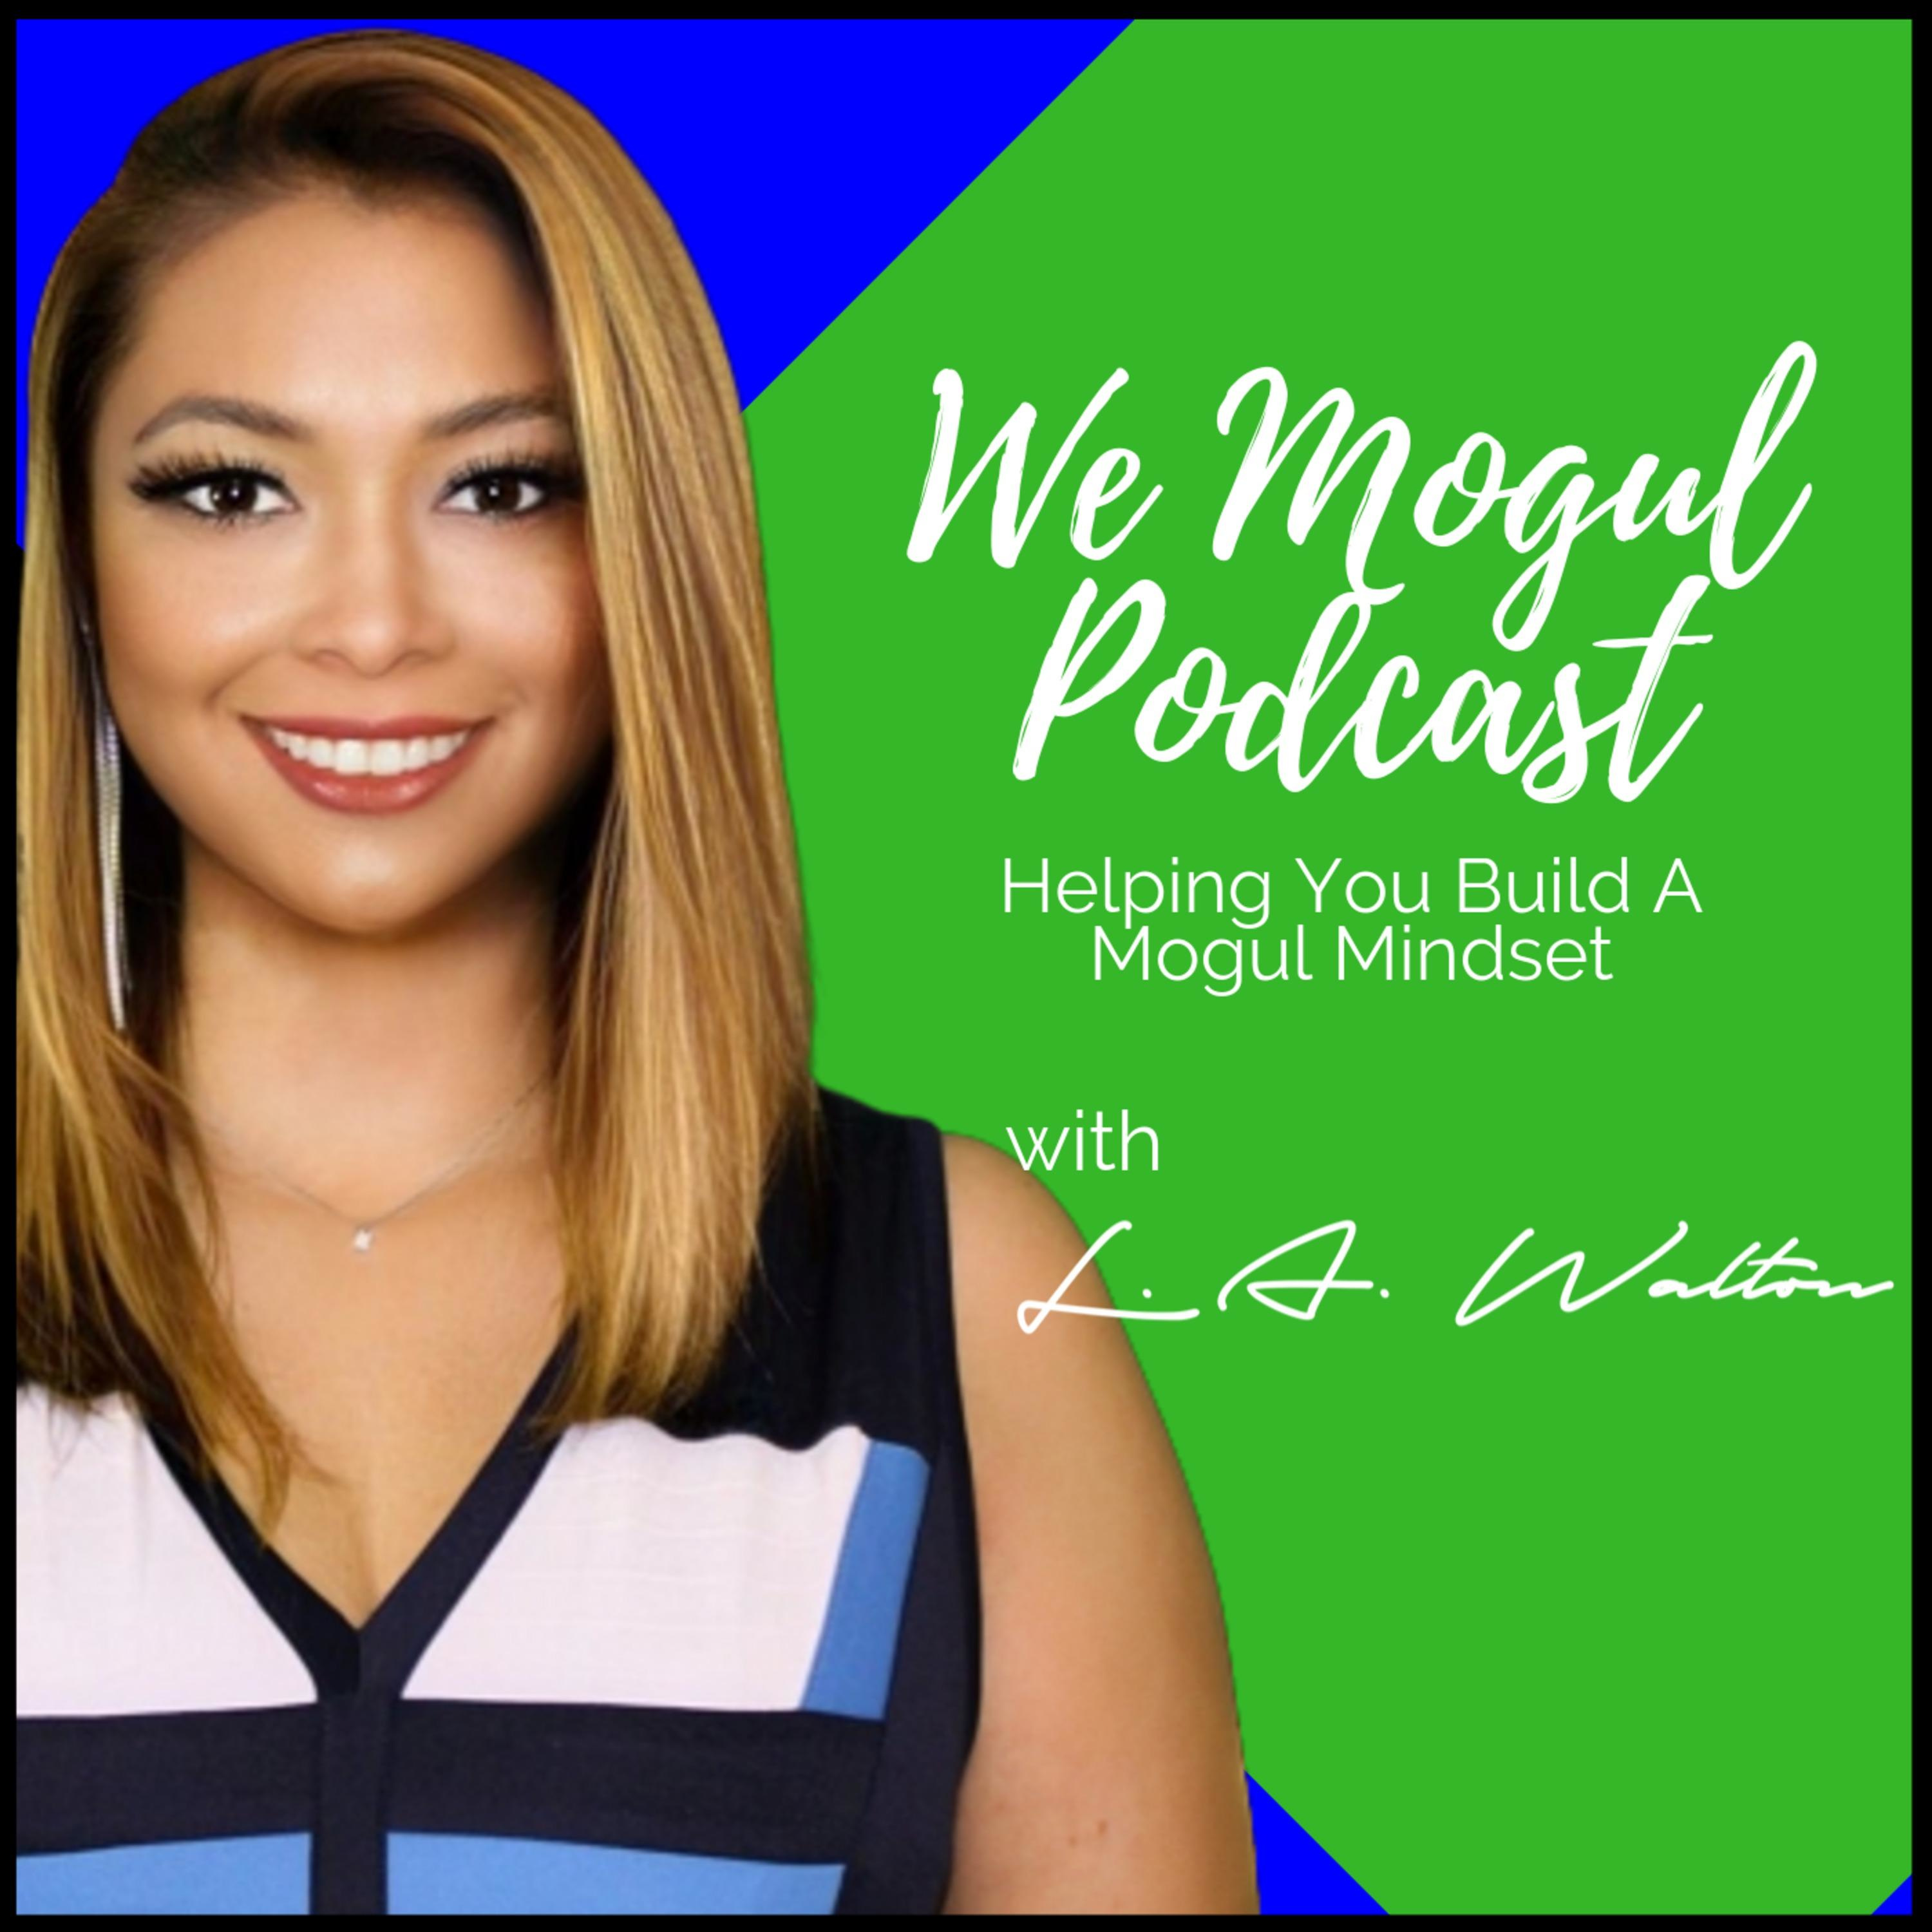 Mogul Minute: Can You Be An Influential Leader?